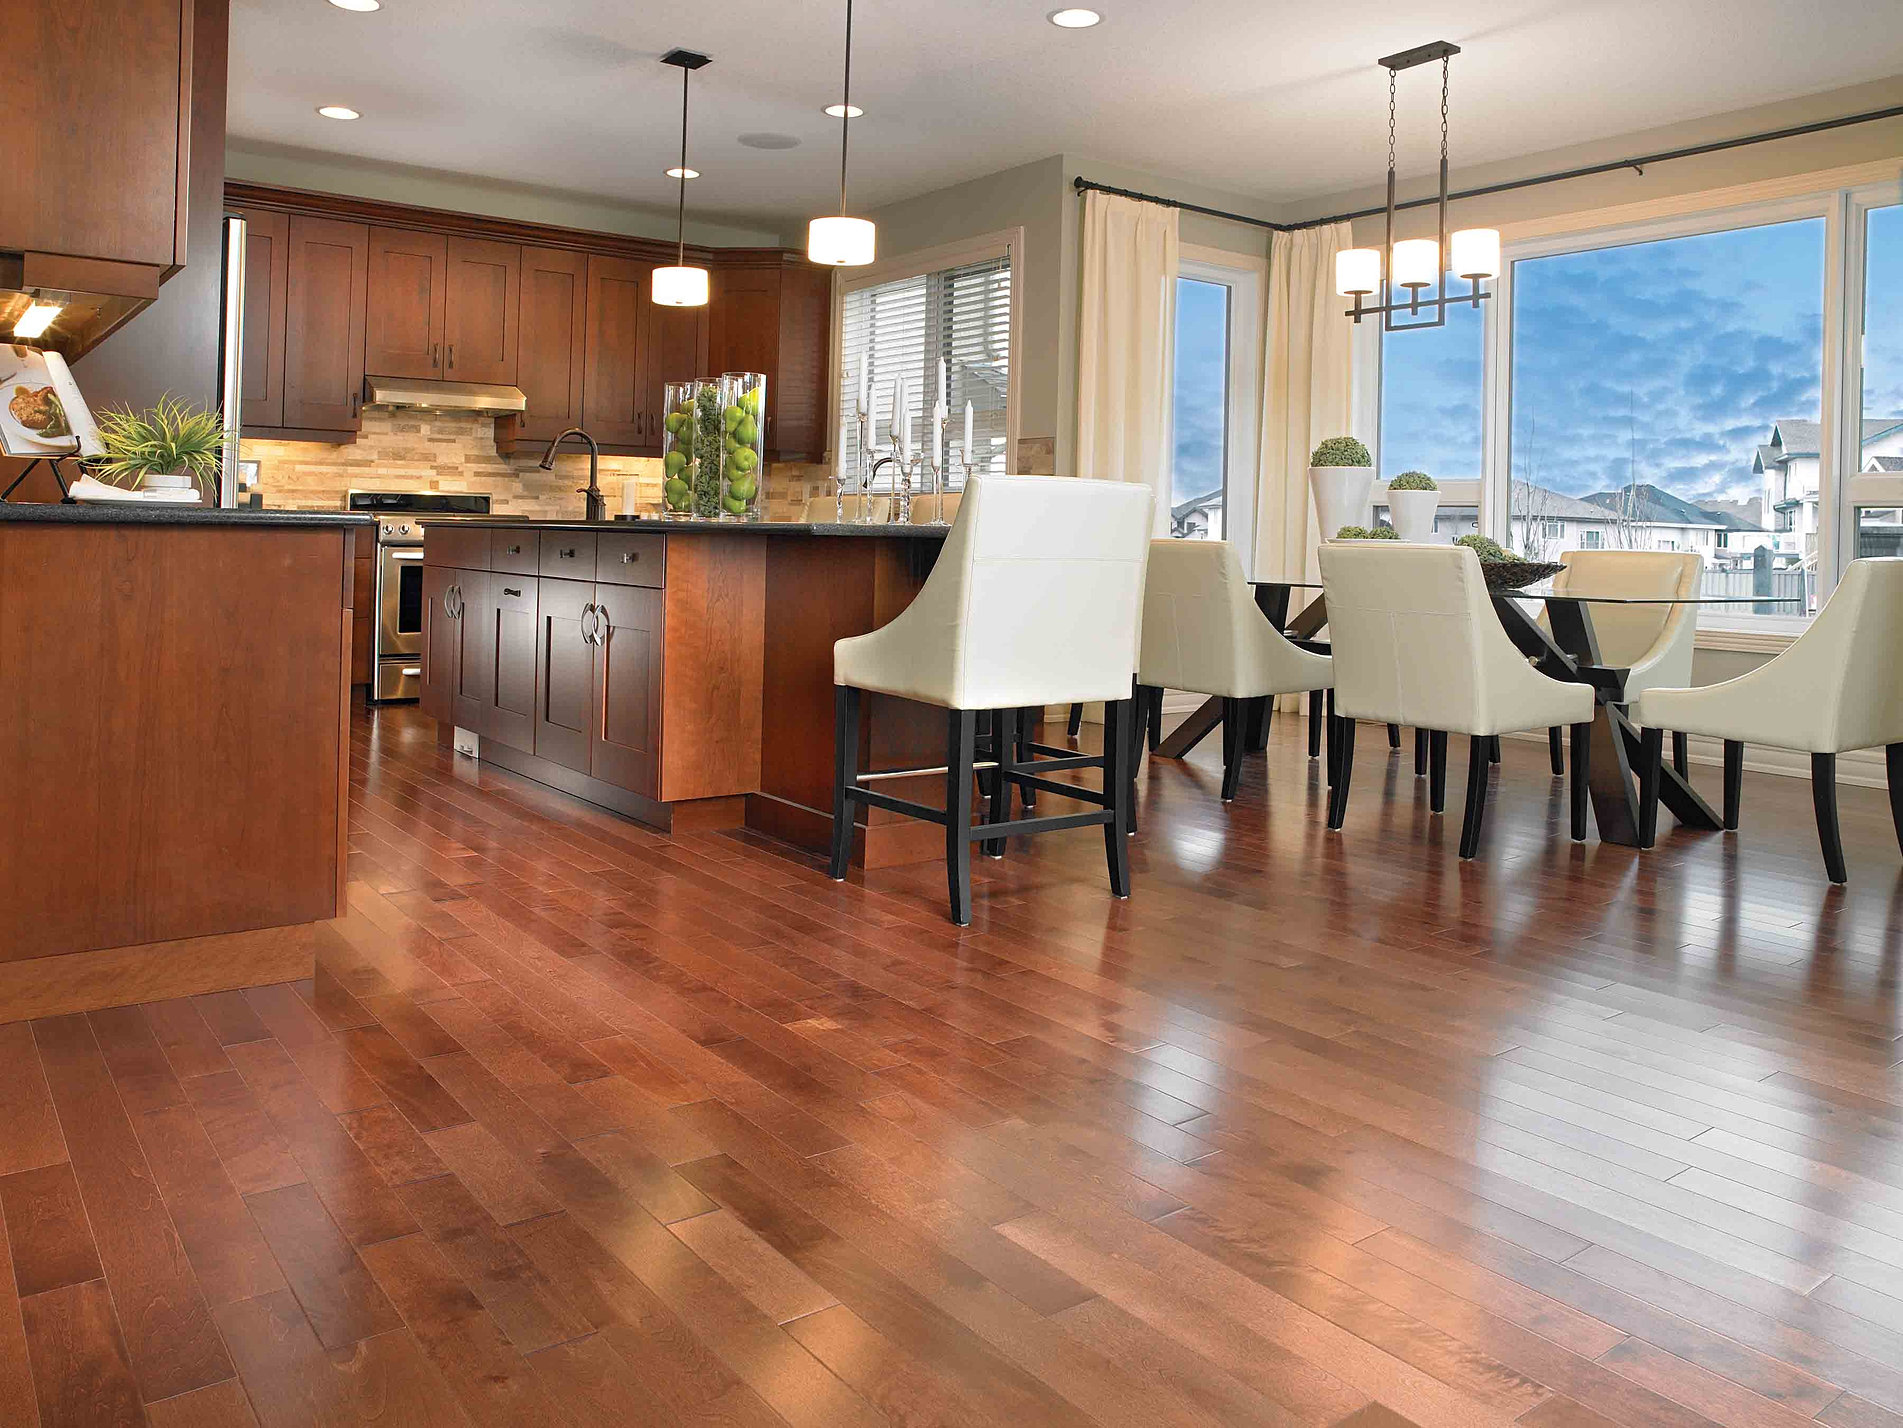 Laminate Flooring For Kitchens Calvetta Brothers Floor Show 216 220 6473